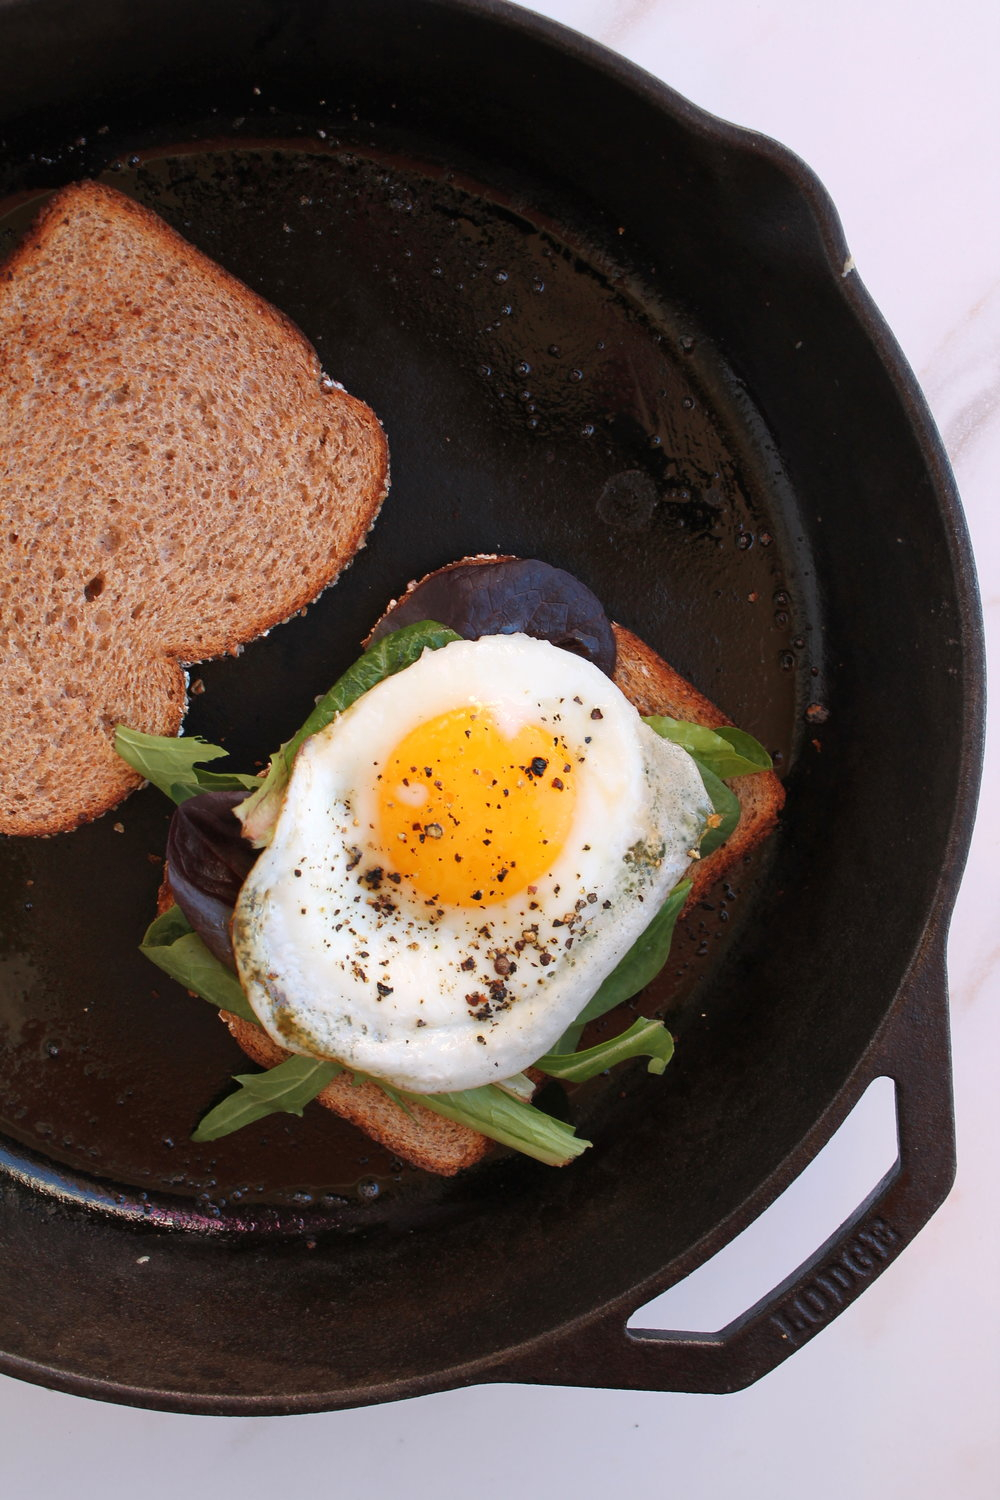 Switch up your breakfast game with fried egg & avocado sandwich. It's Simple, hearty, and great for a lazy morning.